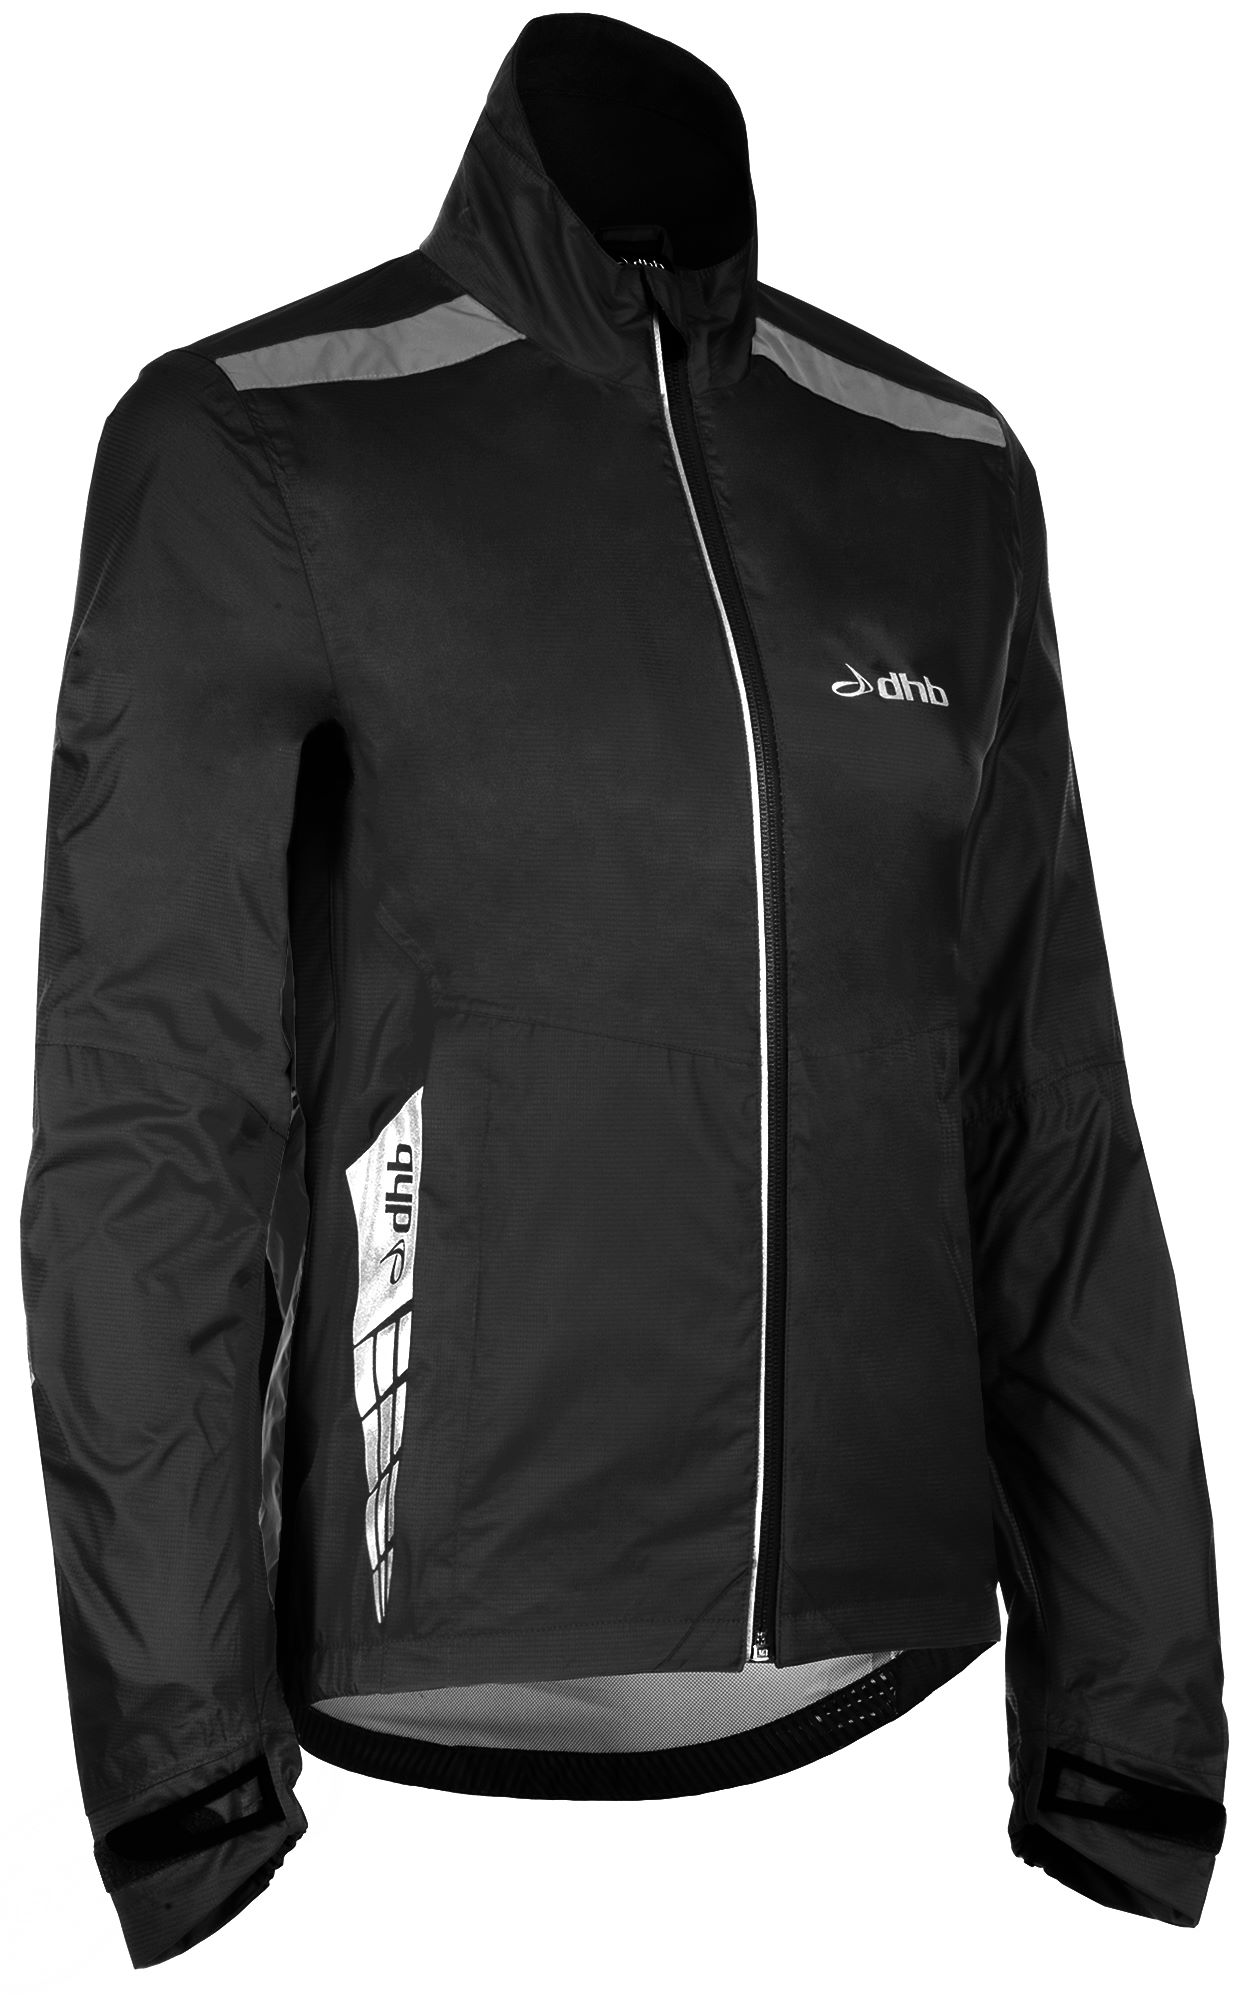 dhb Women's Commuter Waterproof Jacket   Cycling Waterproof Jackets